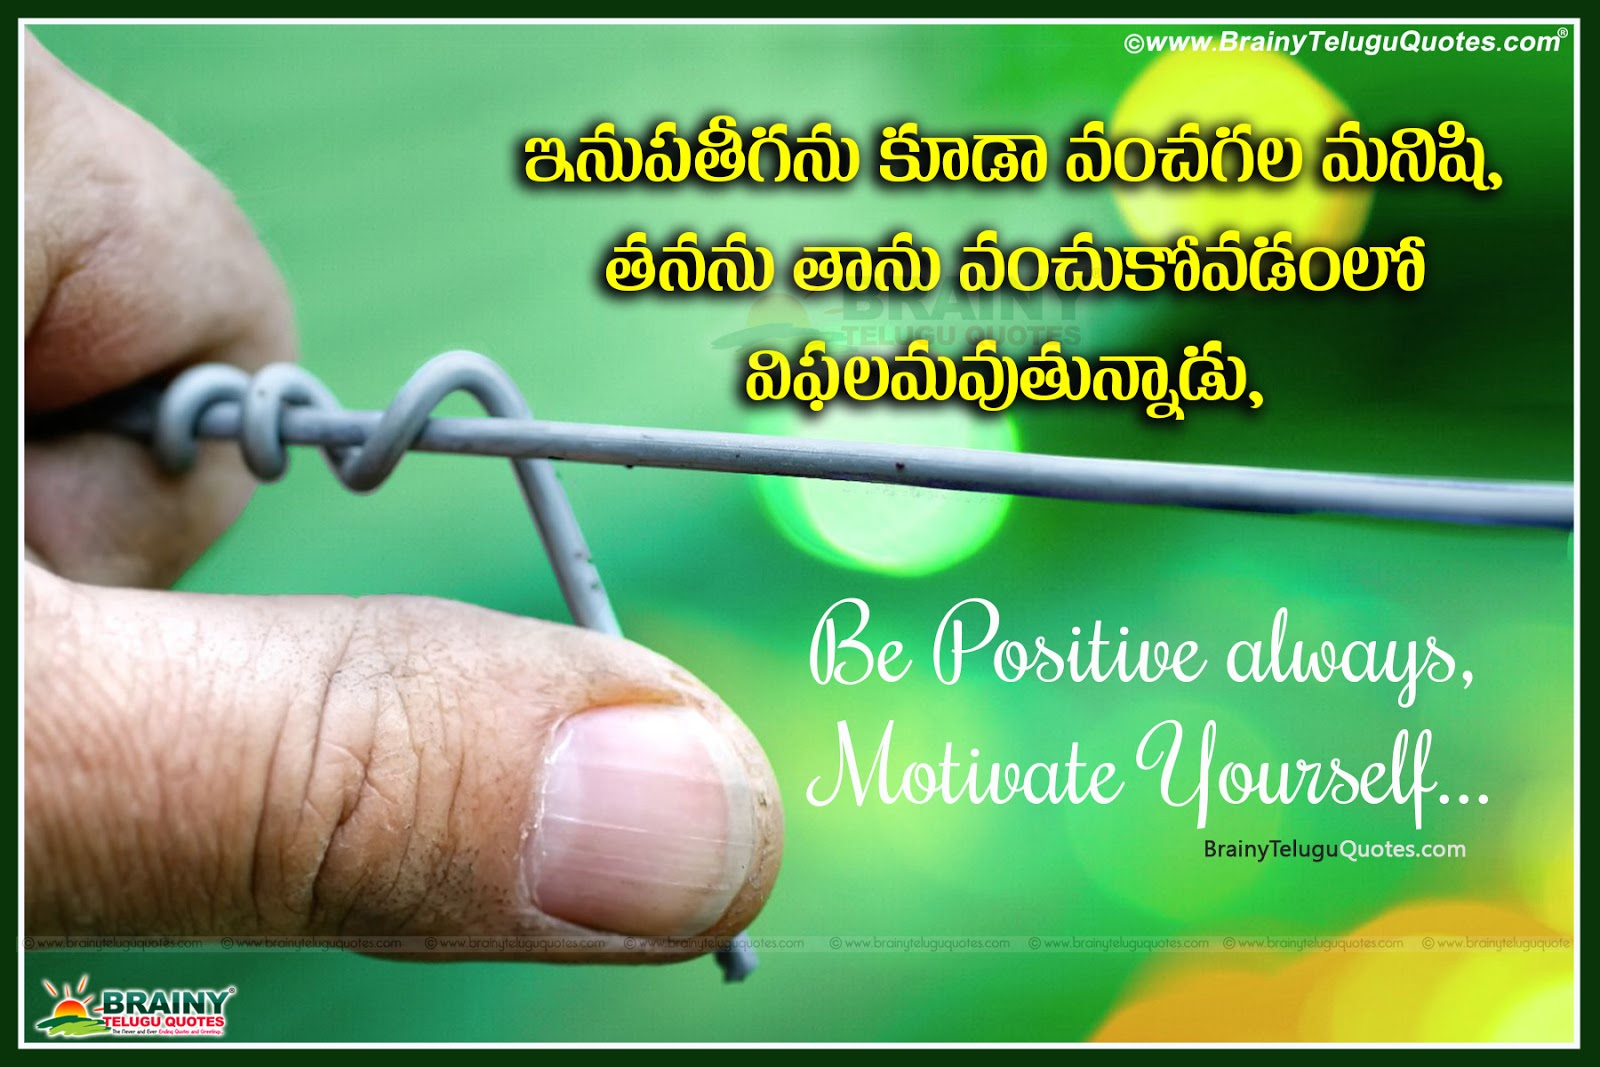 Telugu daily good morning quotes free birthday invitations be positive always motivate your self quotes messages wallpapers self2bmotivational2blines2bin2btelugu 20162bbrainyteluguquotes telugu best ccuart Gallery